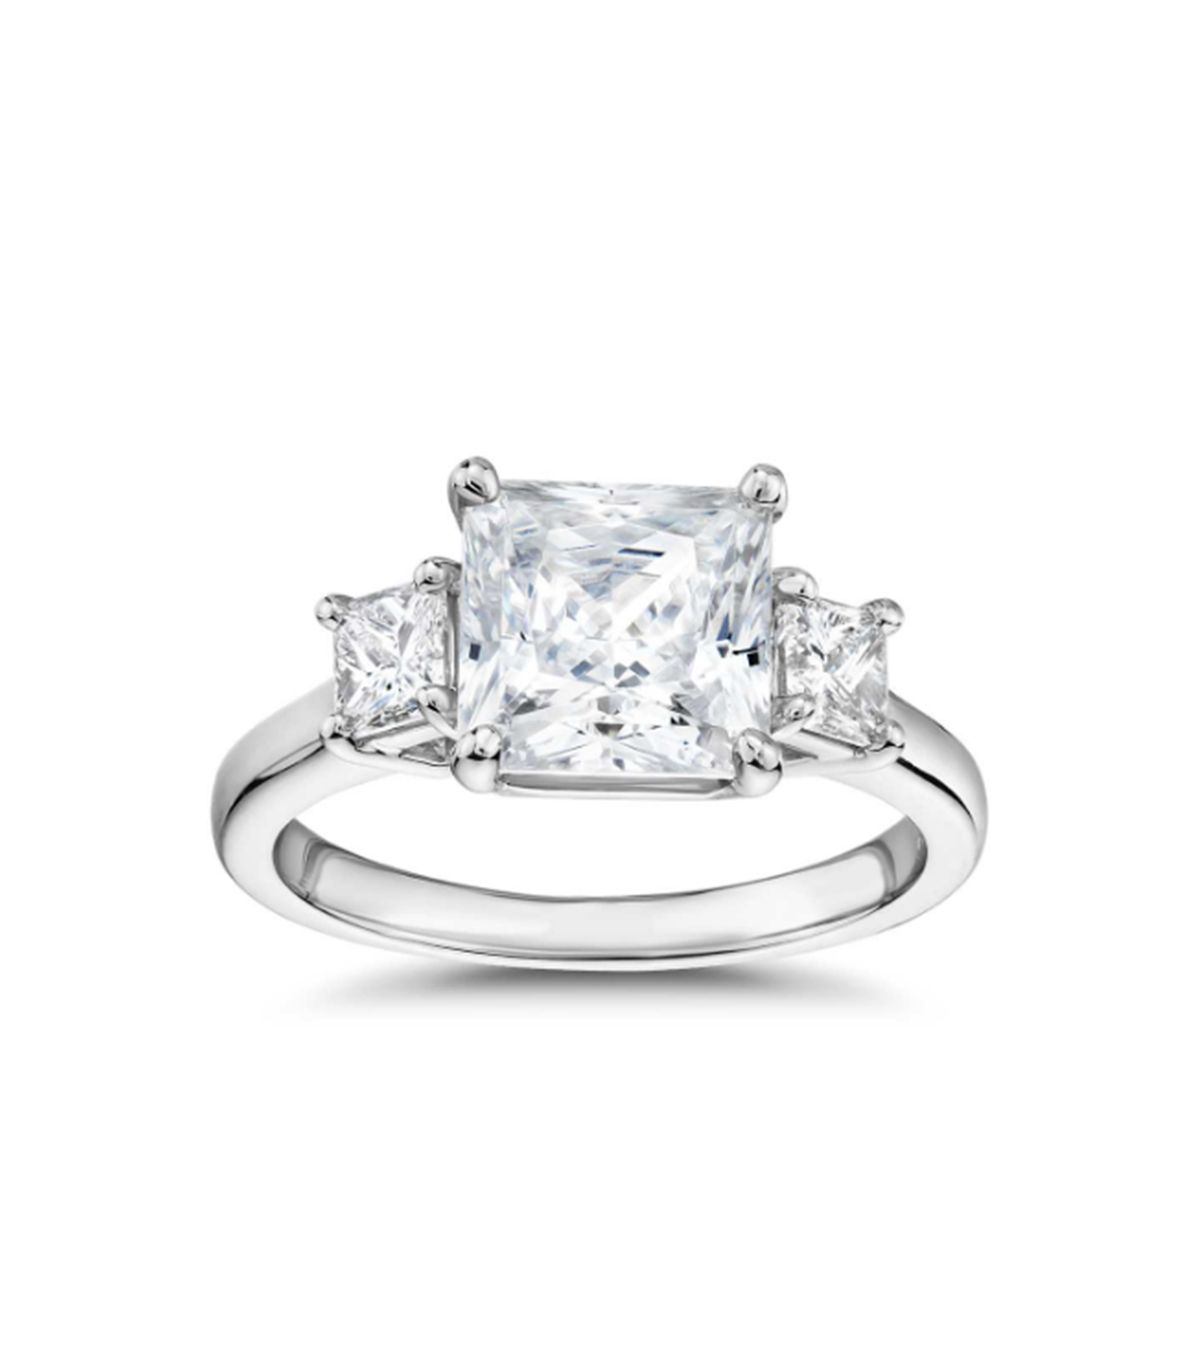 7 Things That Always Make an Engagement Ring Look Cheap 2